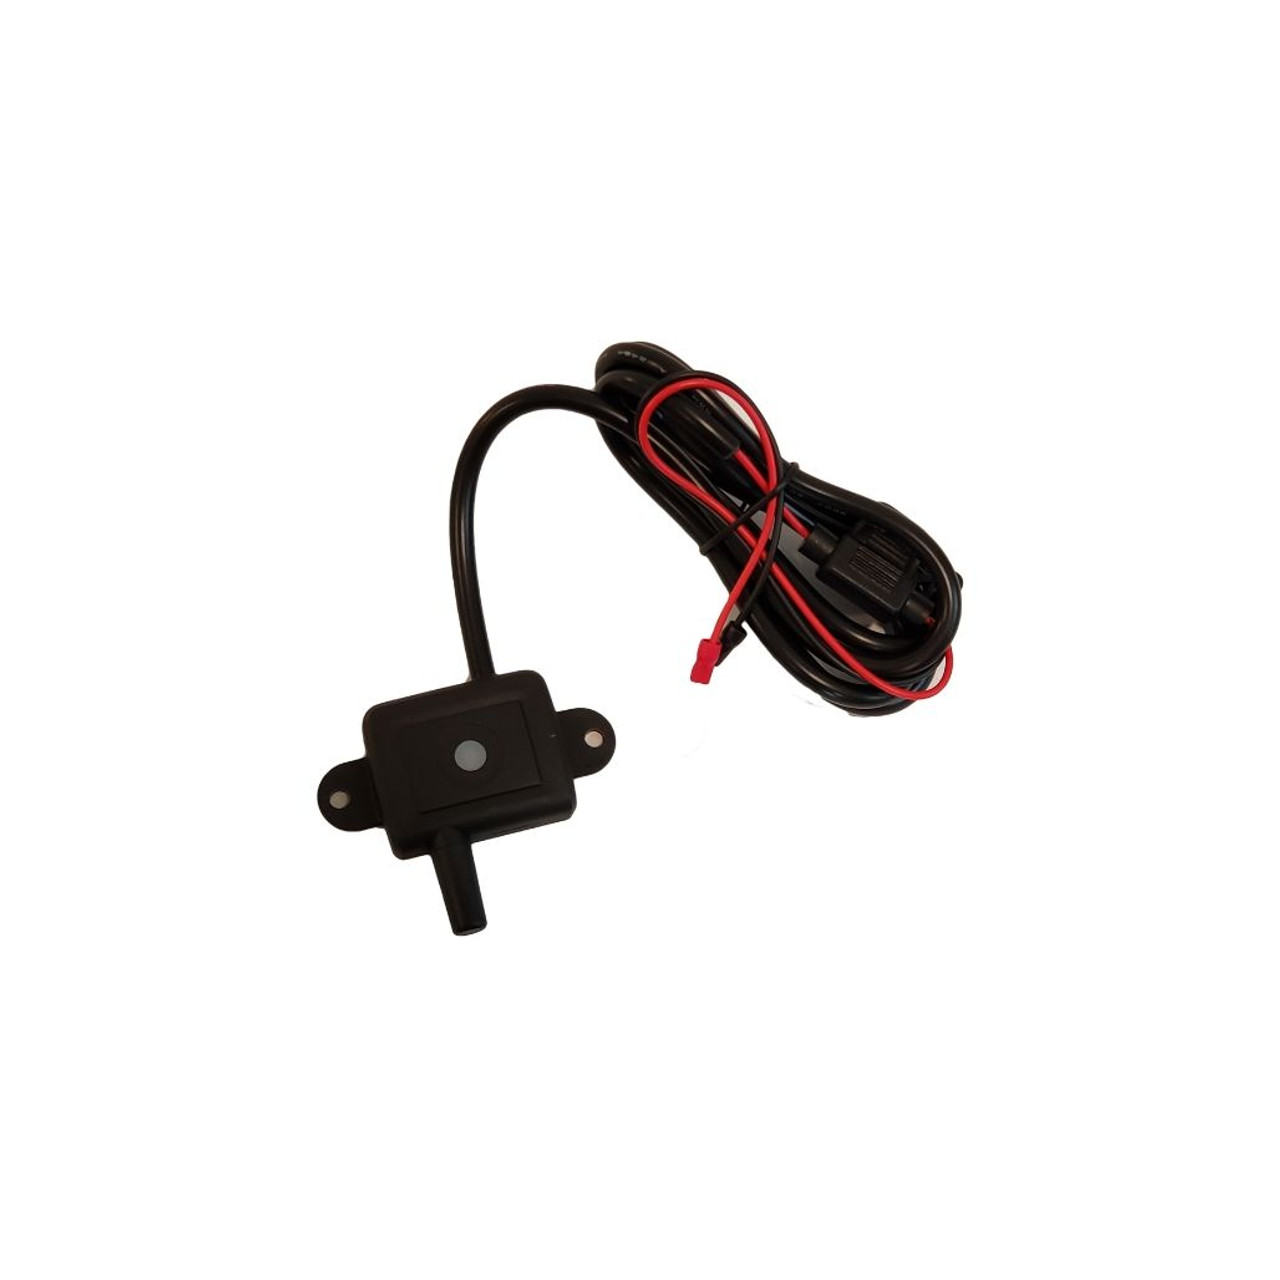 TST 507 TPMS with FLOW THRU Sensors (08) and Repeater